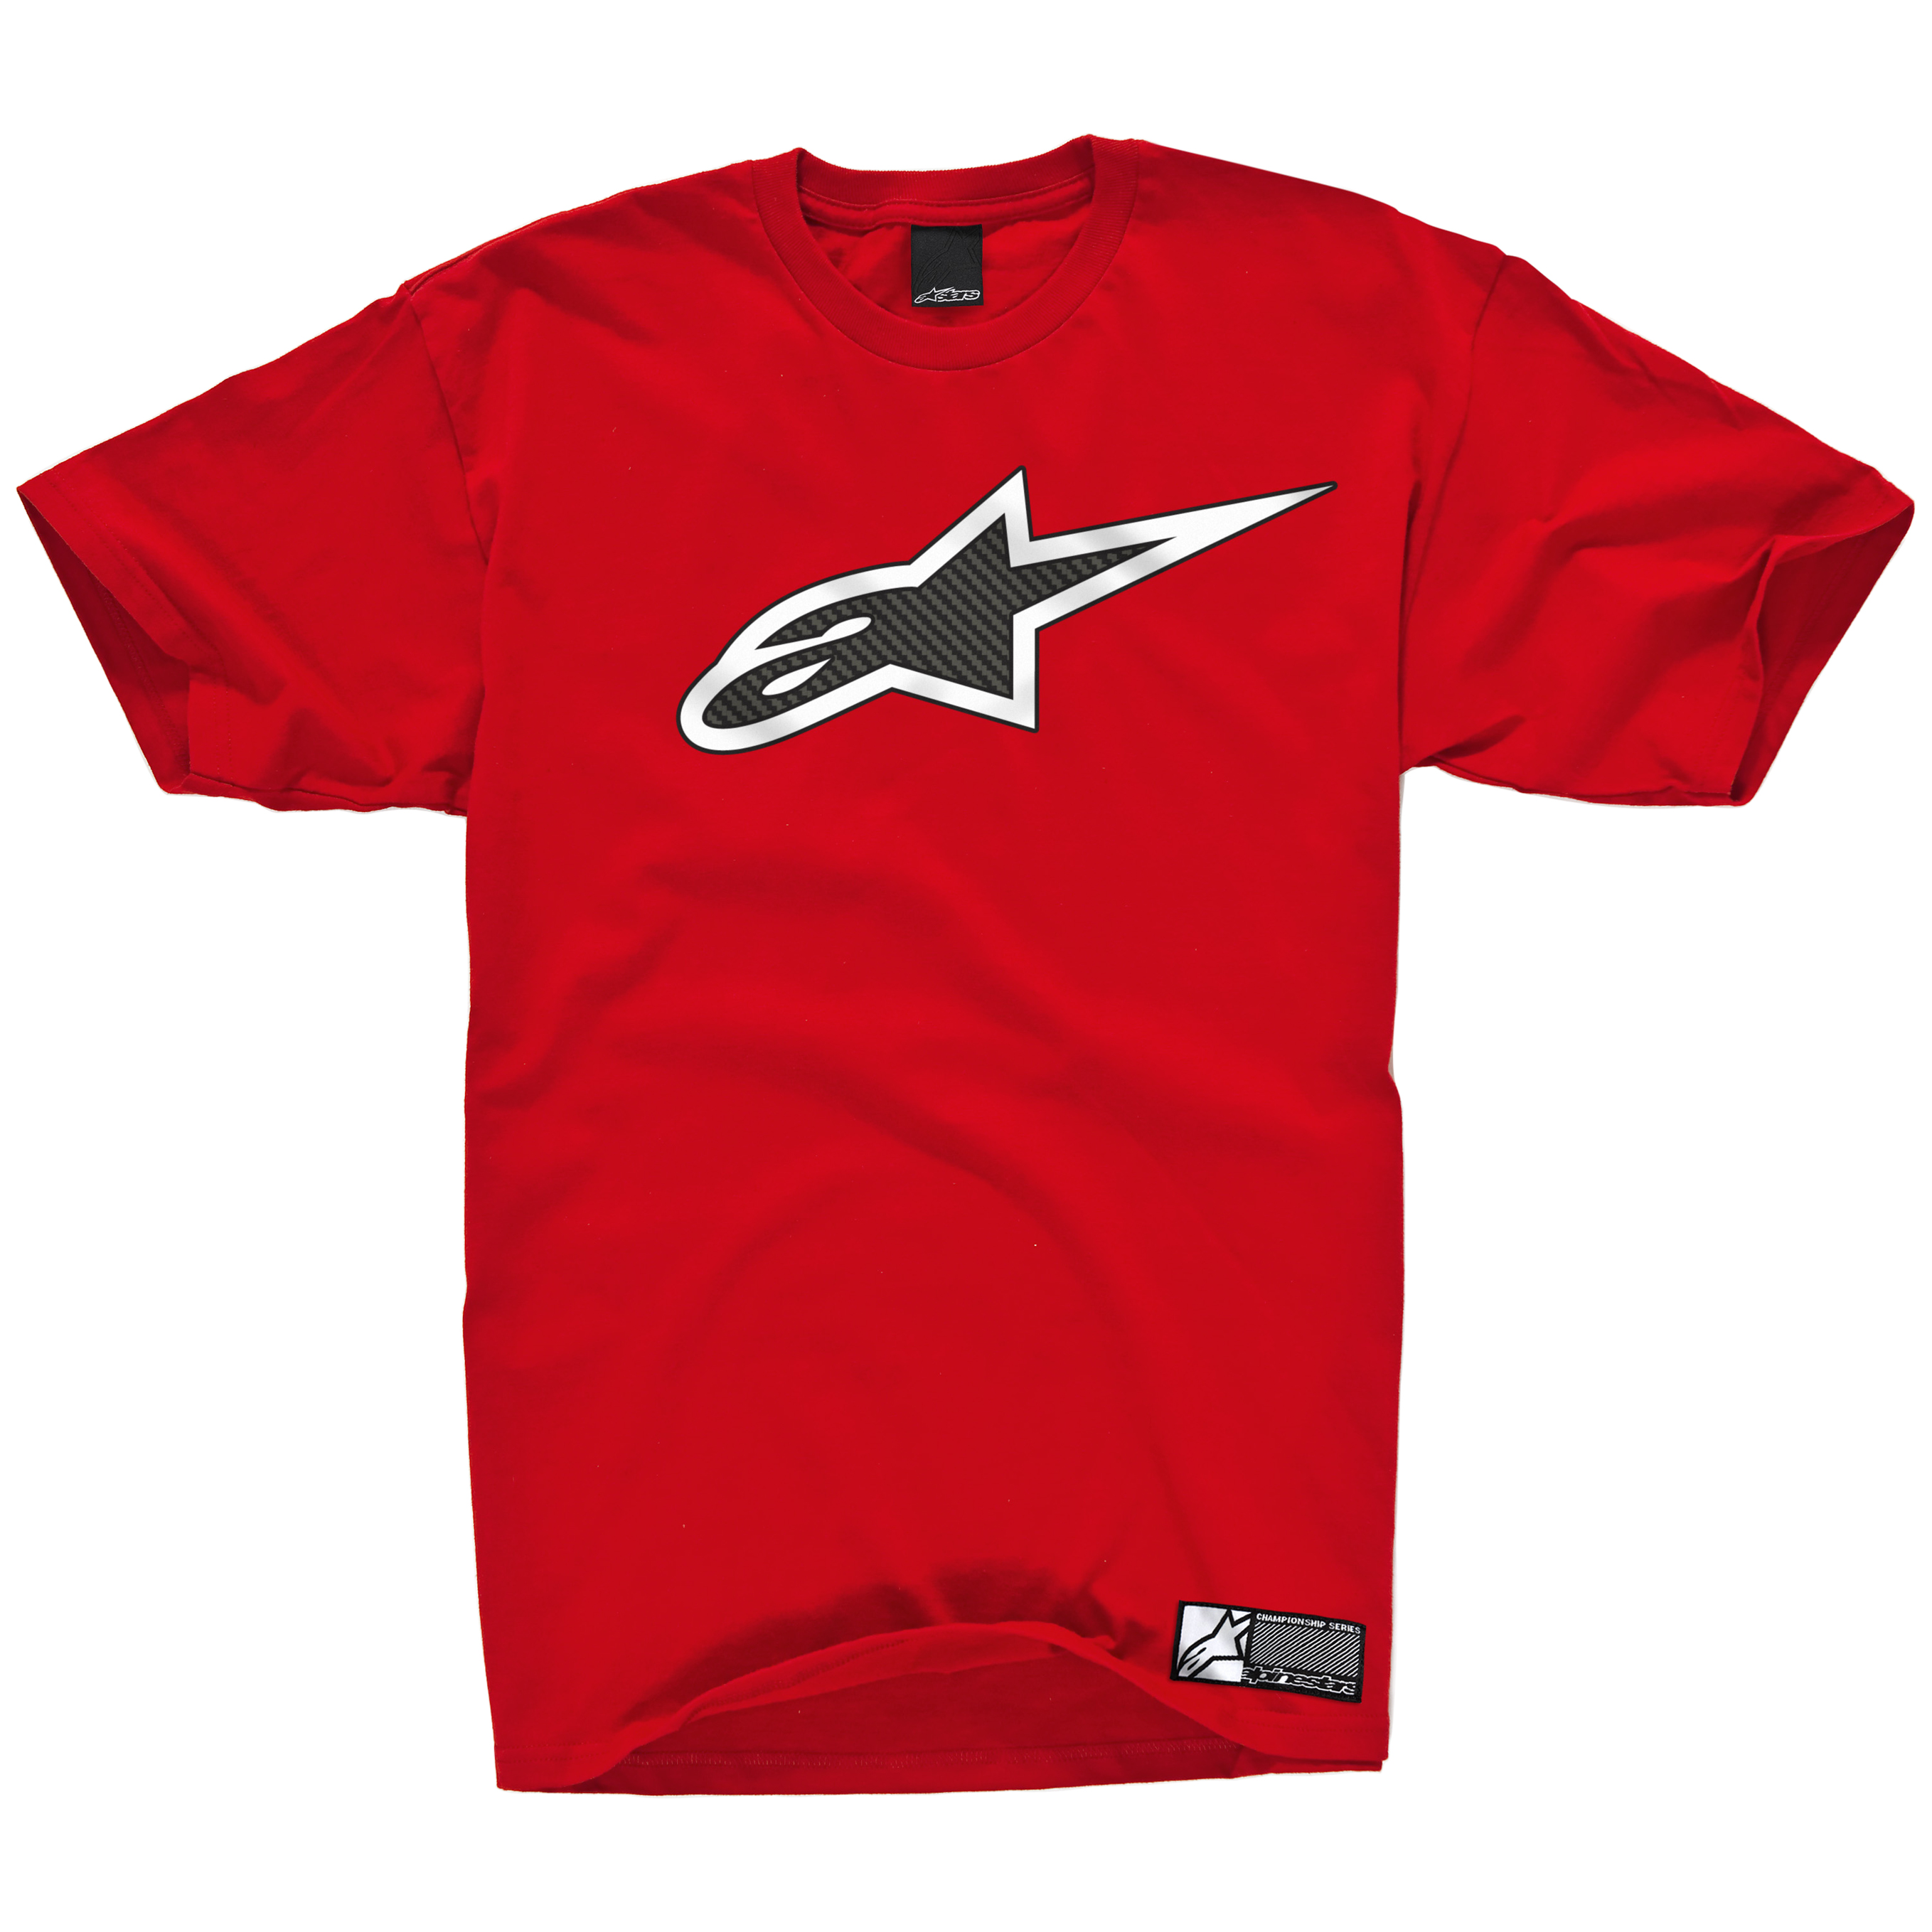 Alpinestars Carbon Fiber T-Shirt - Red